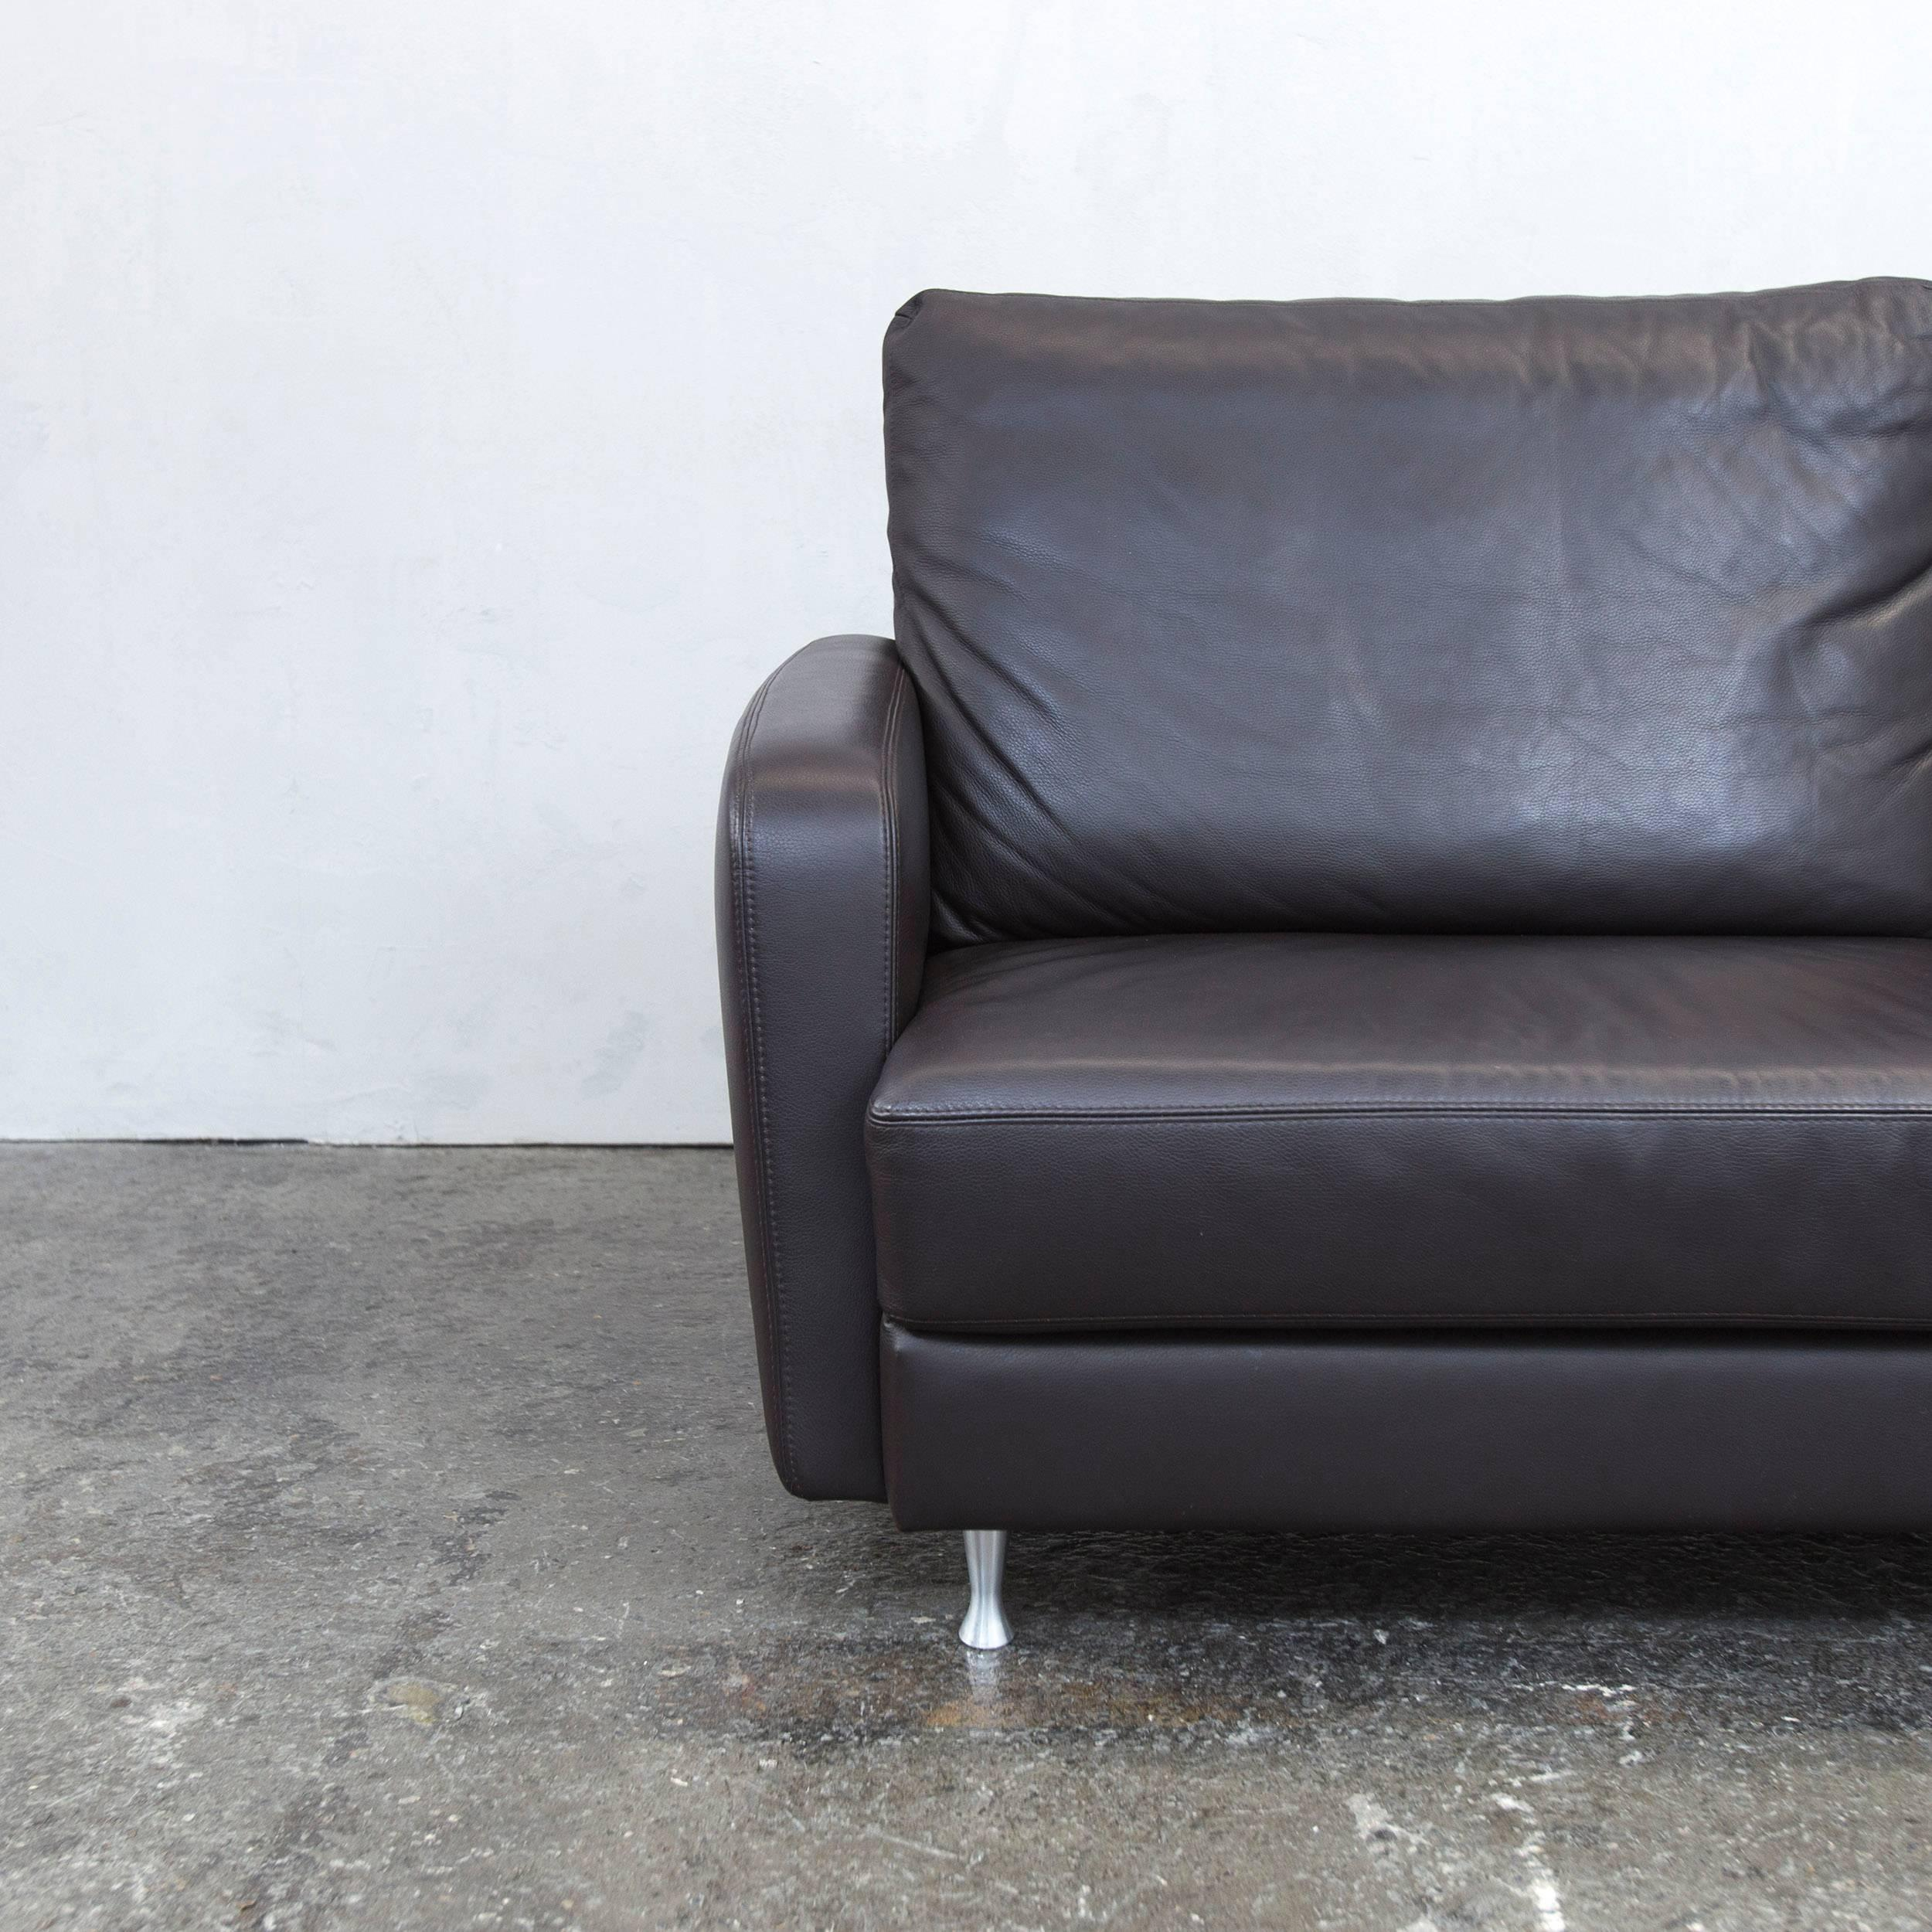 Designer couch leder braun  Couch Braun Leder. Beautiful Leder Sofa Braun Aecagra With Couch ...